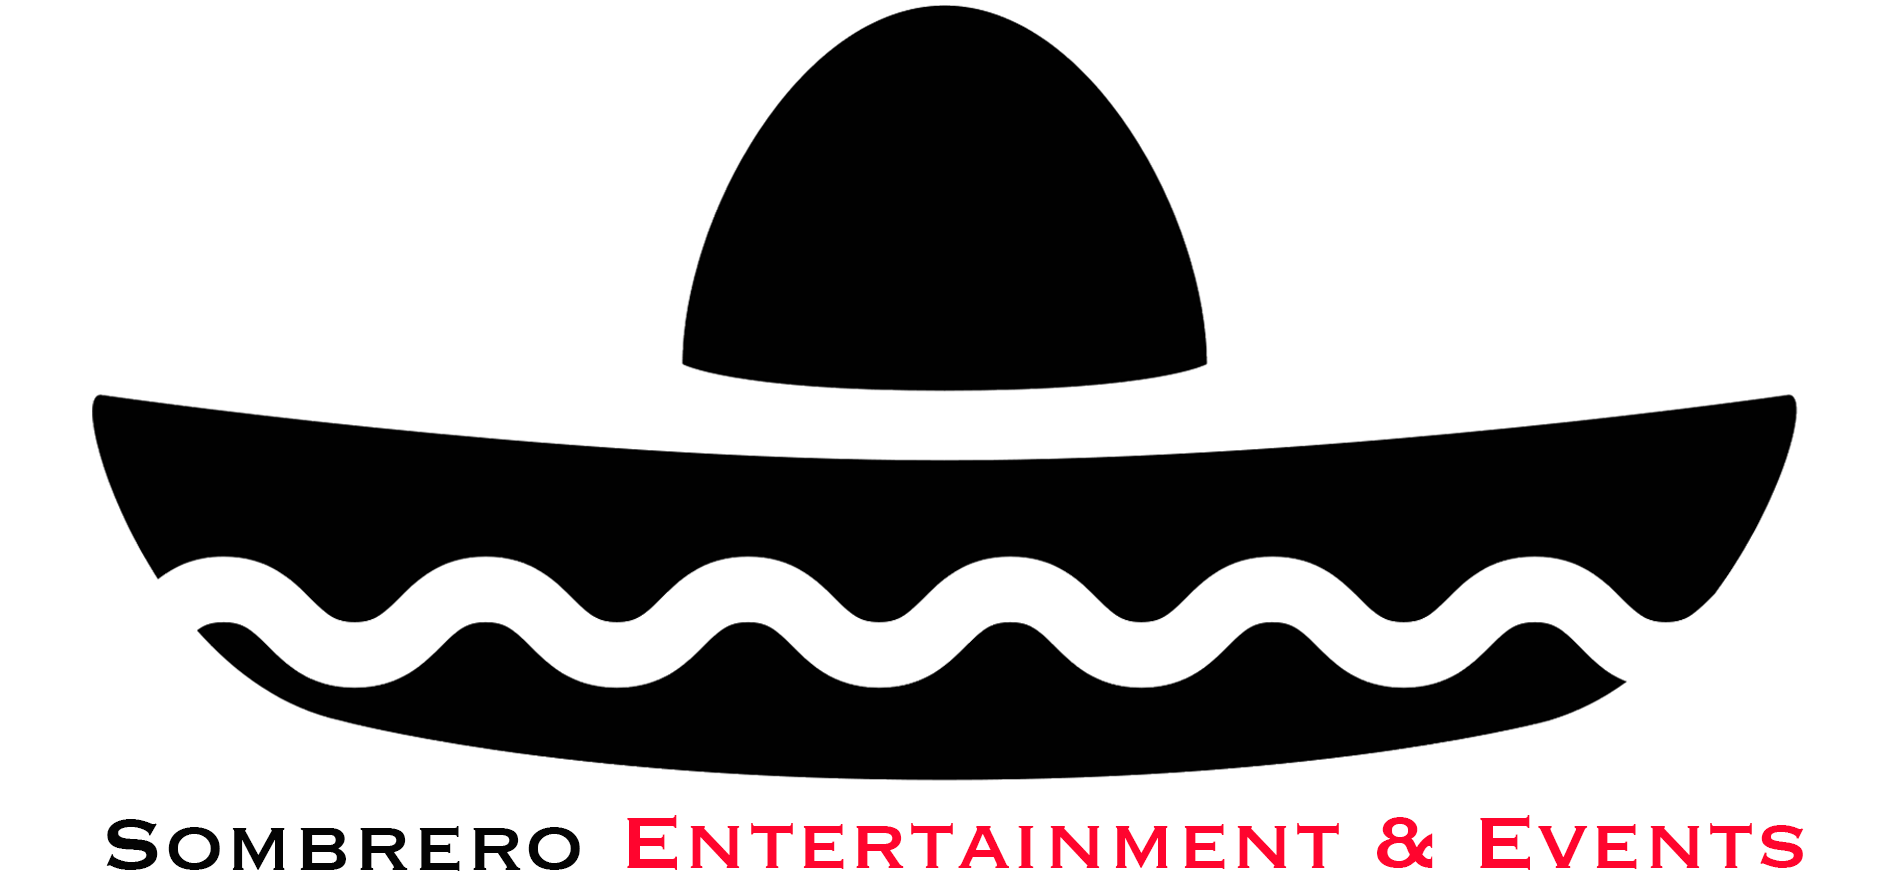 Sombrero Entertainment & Events